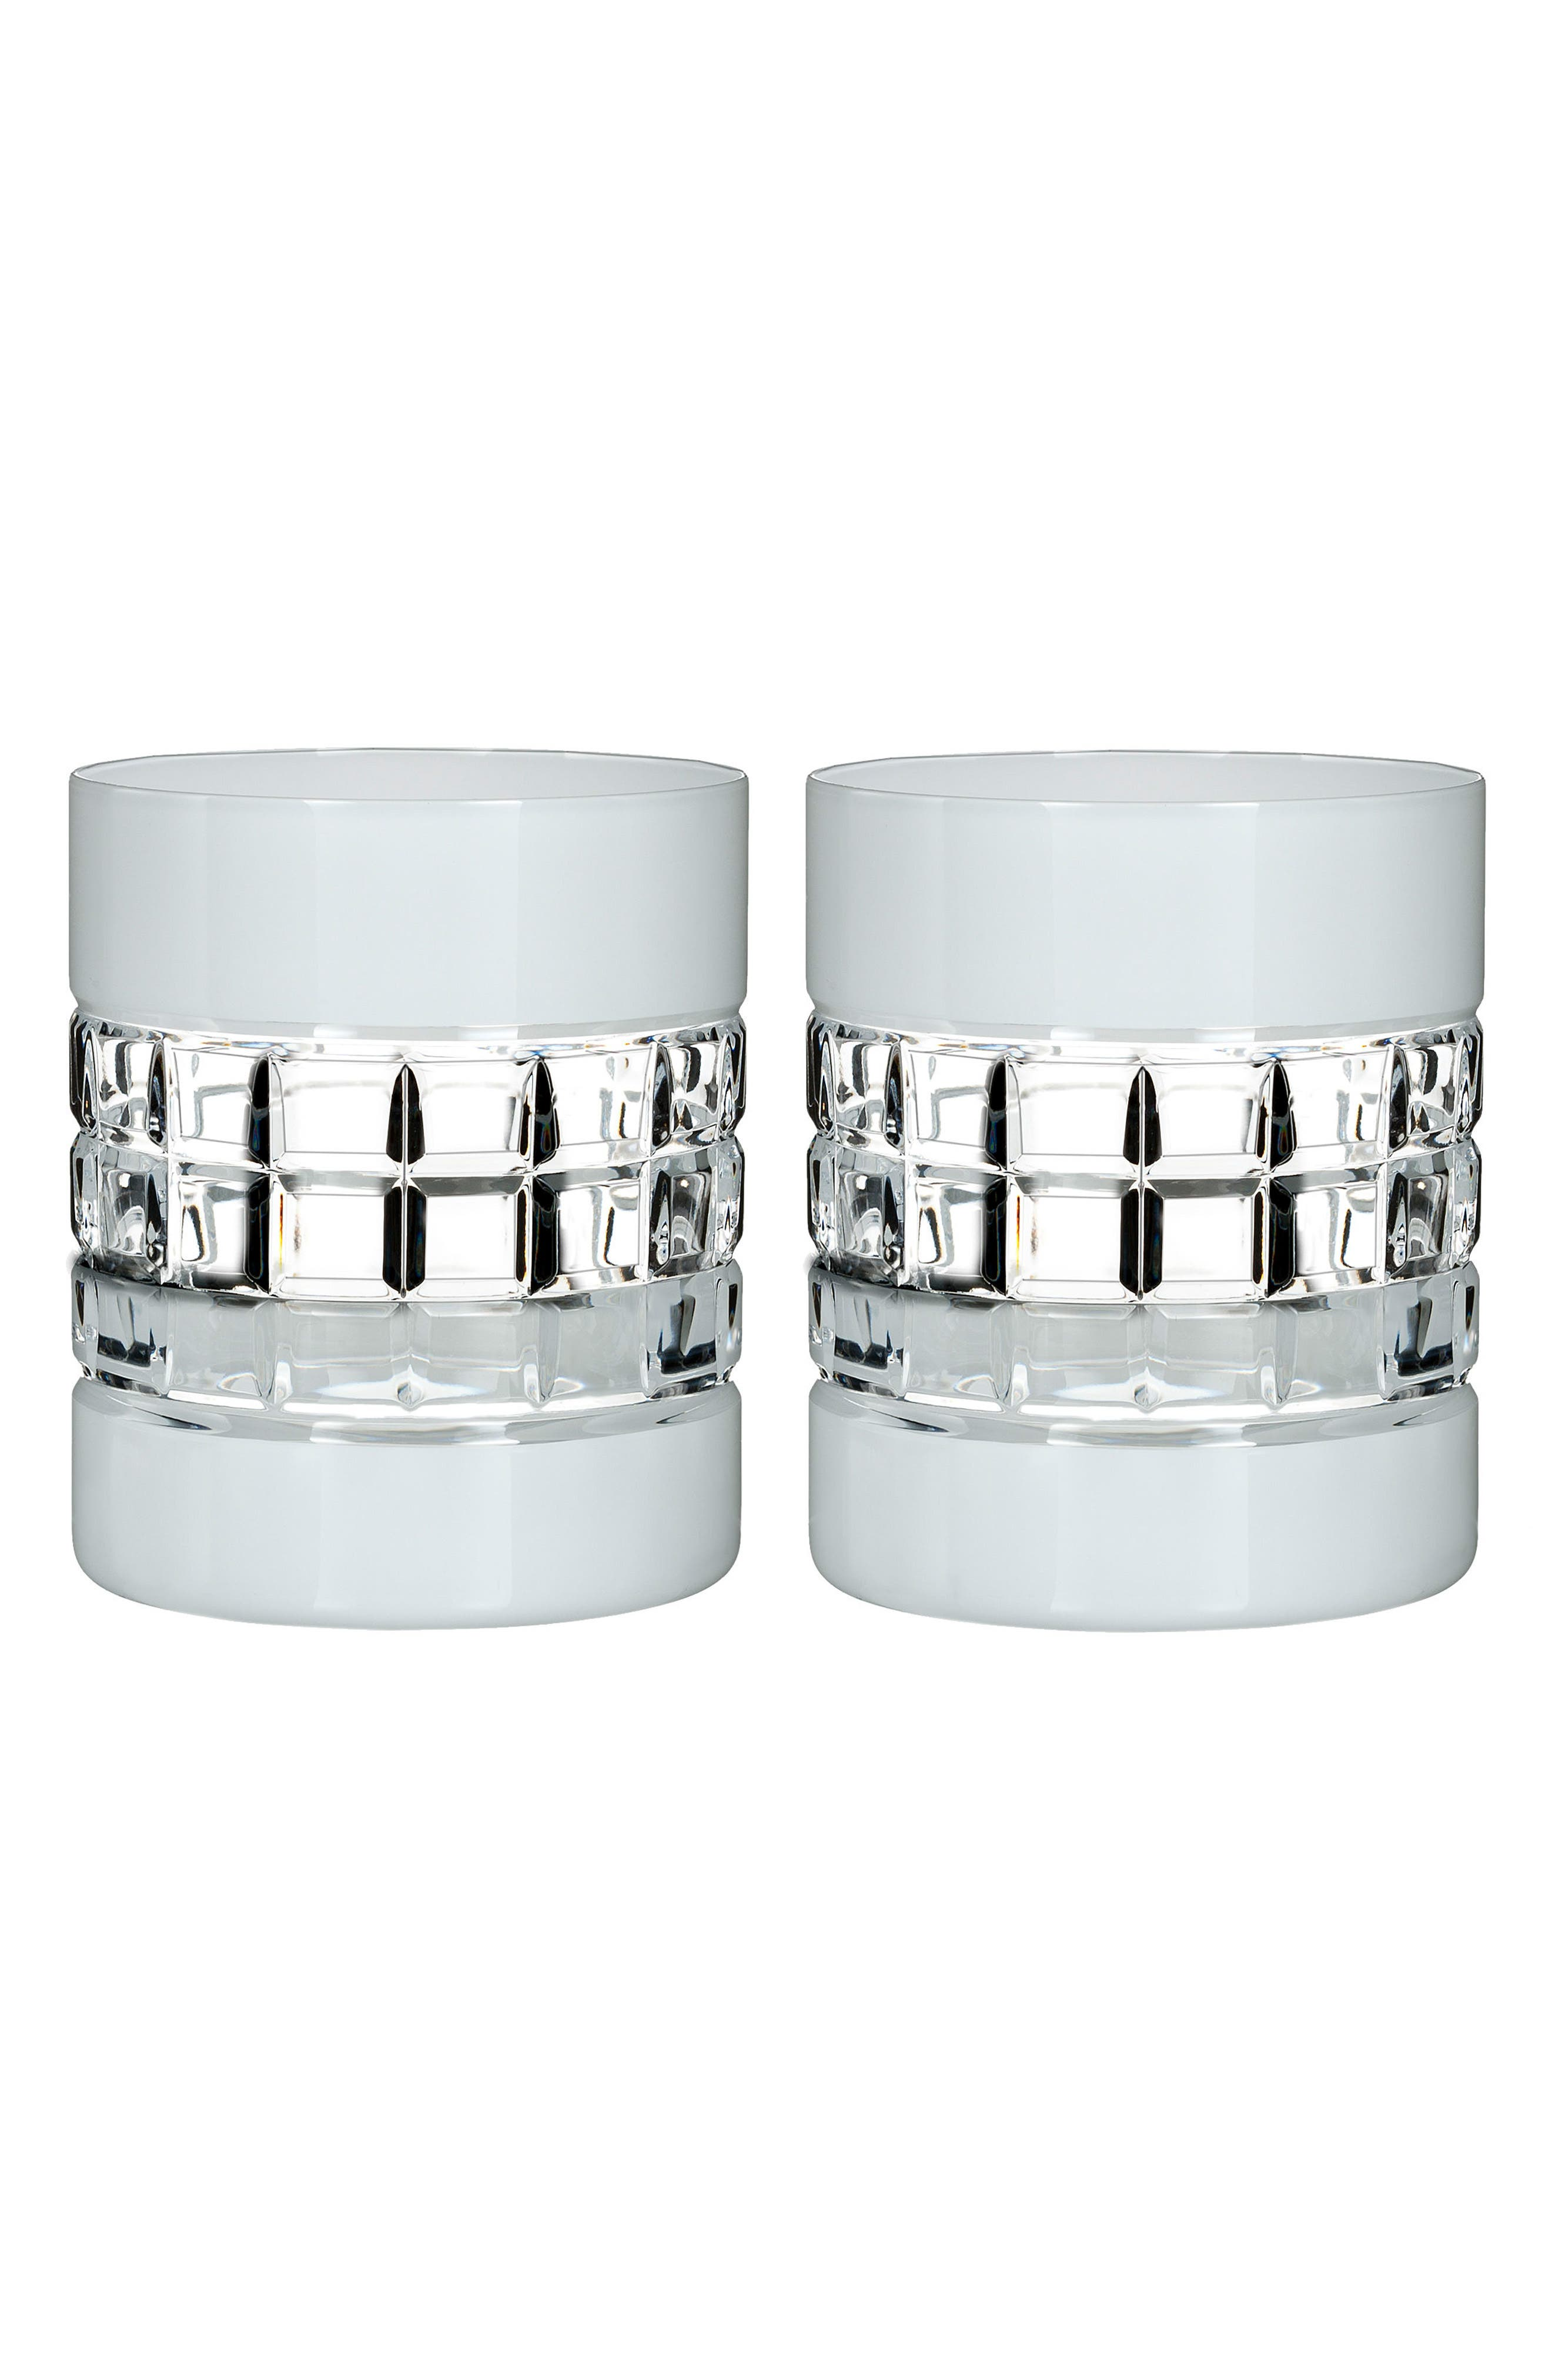 London Set of 2 White Lead Crystal Double Old Fashioned Glasses,                             Main thumbnail 1, color,